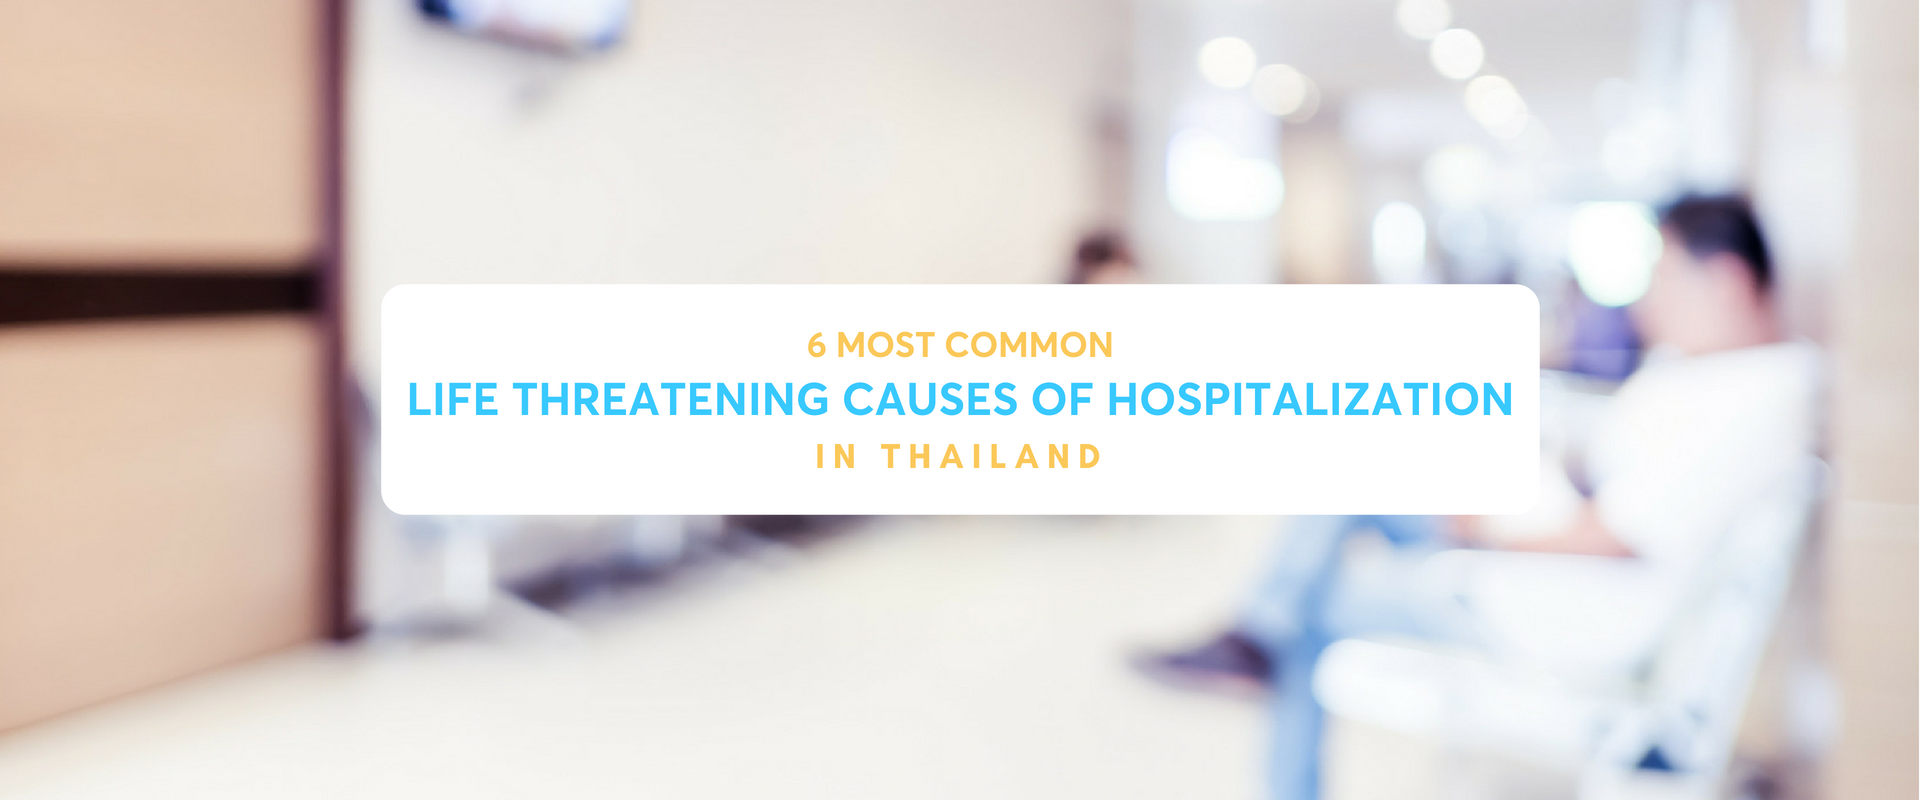 The 6 Most Common Life Threatening Causes of Hospitalization in Thailand